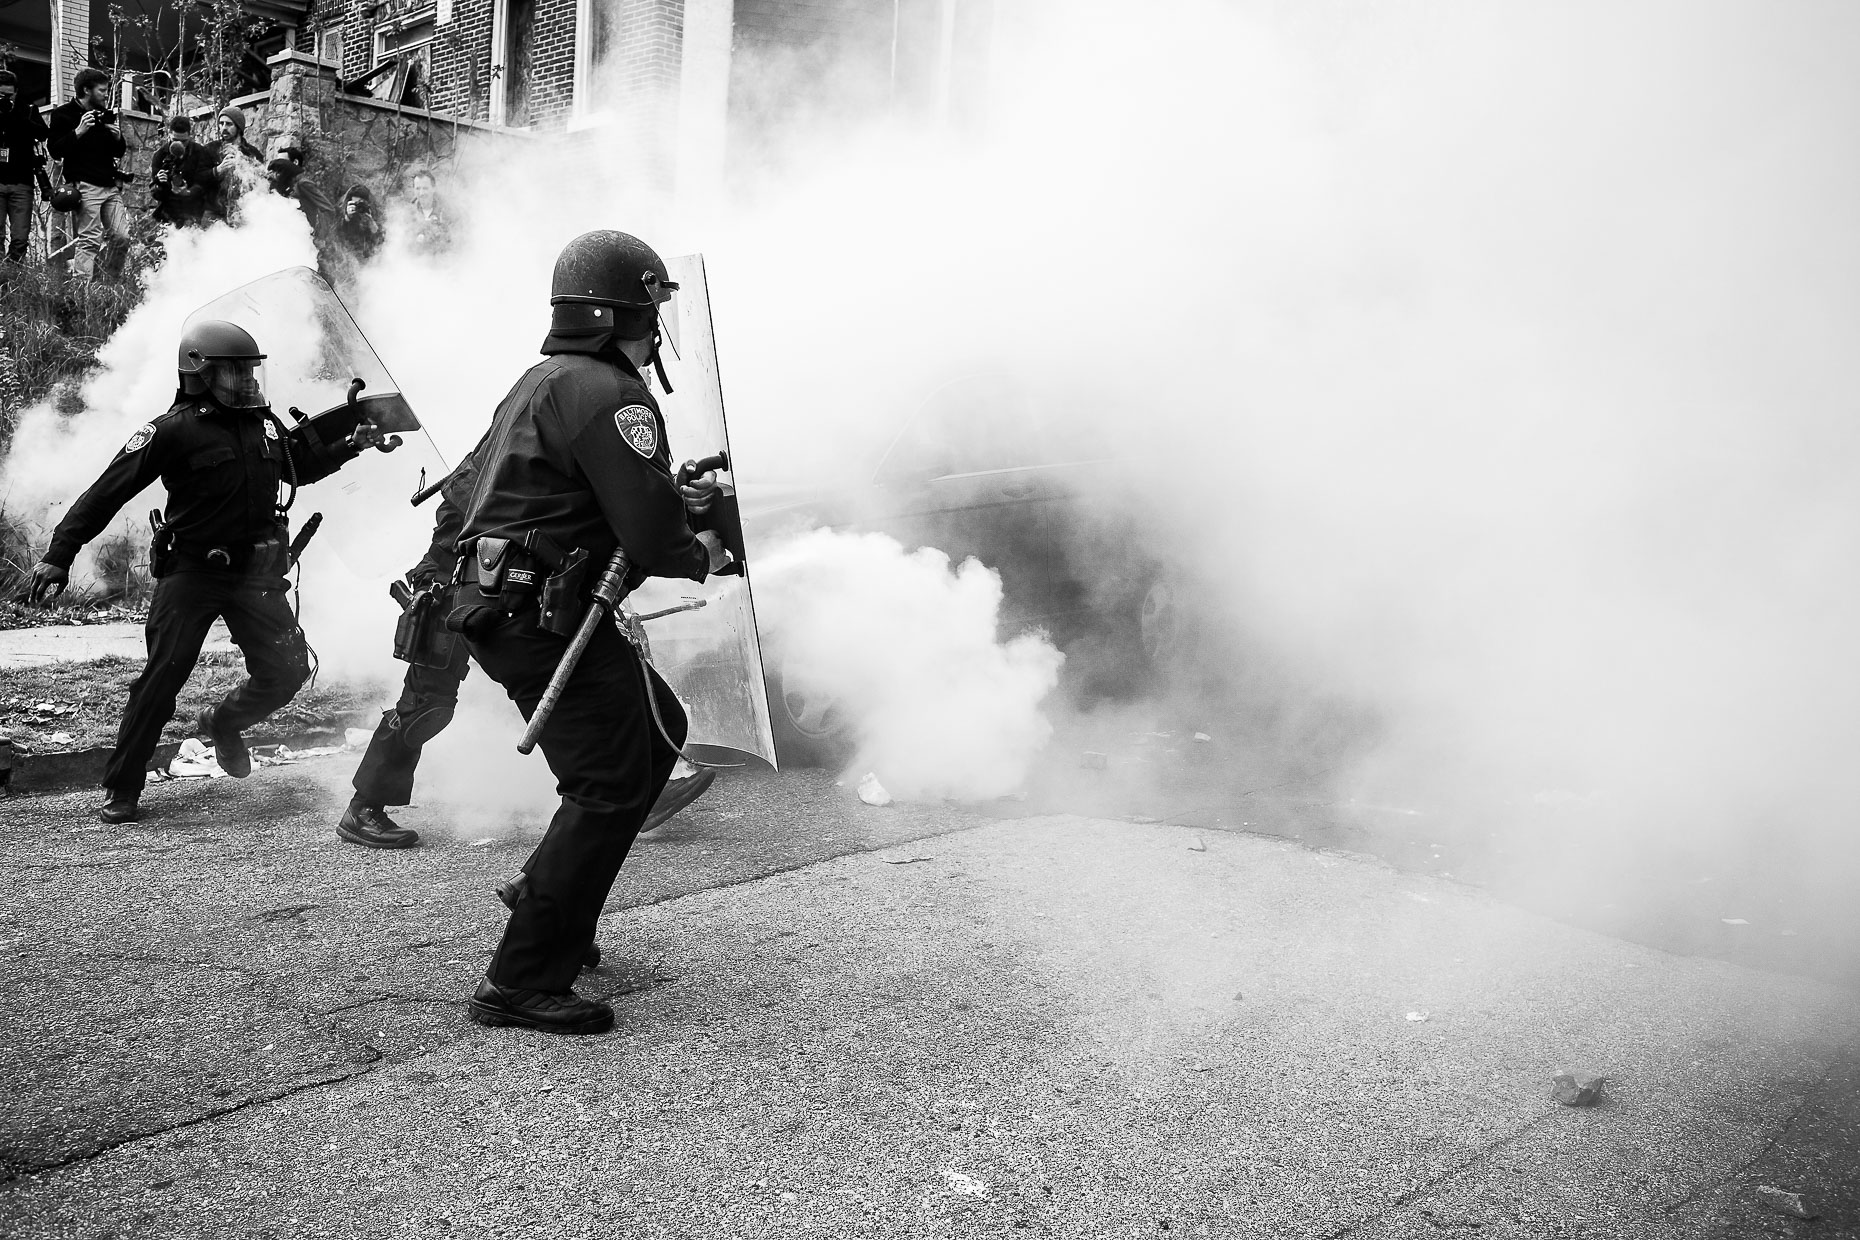 Baltimore Responds - The Baltimore Uprising - Photojournalism 21